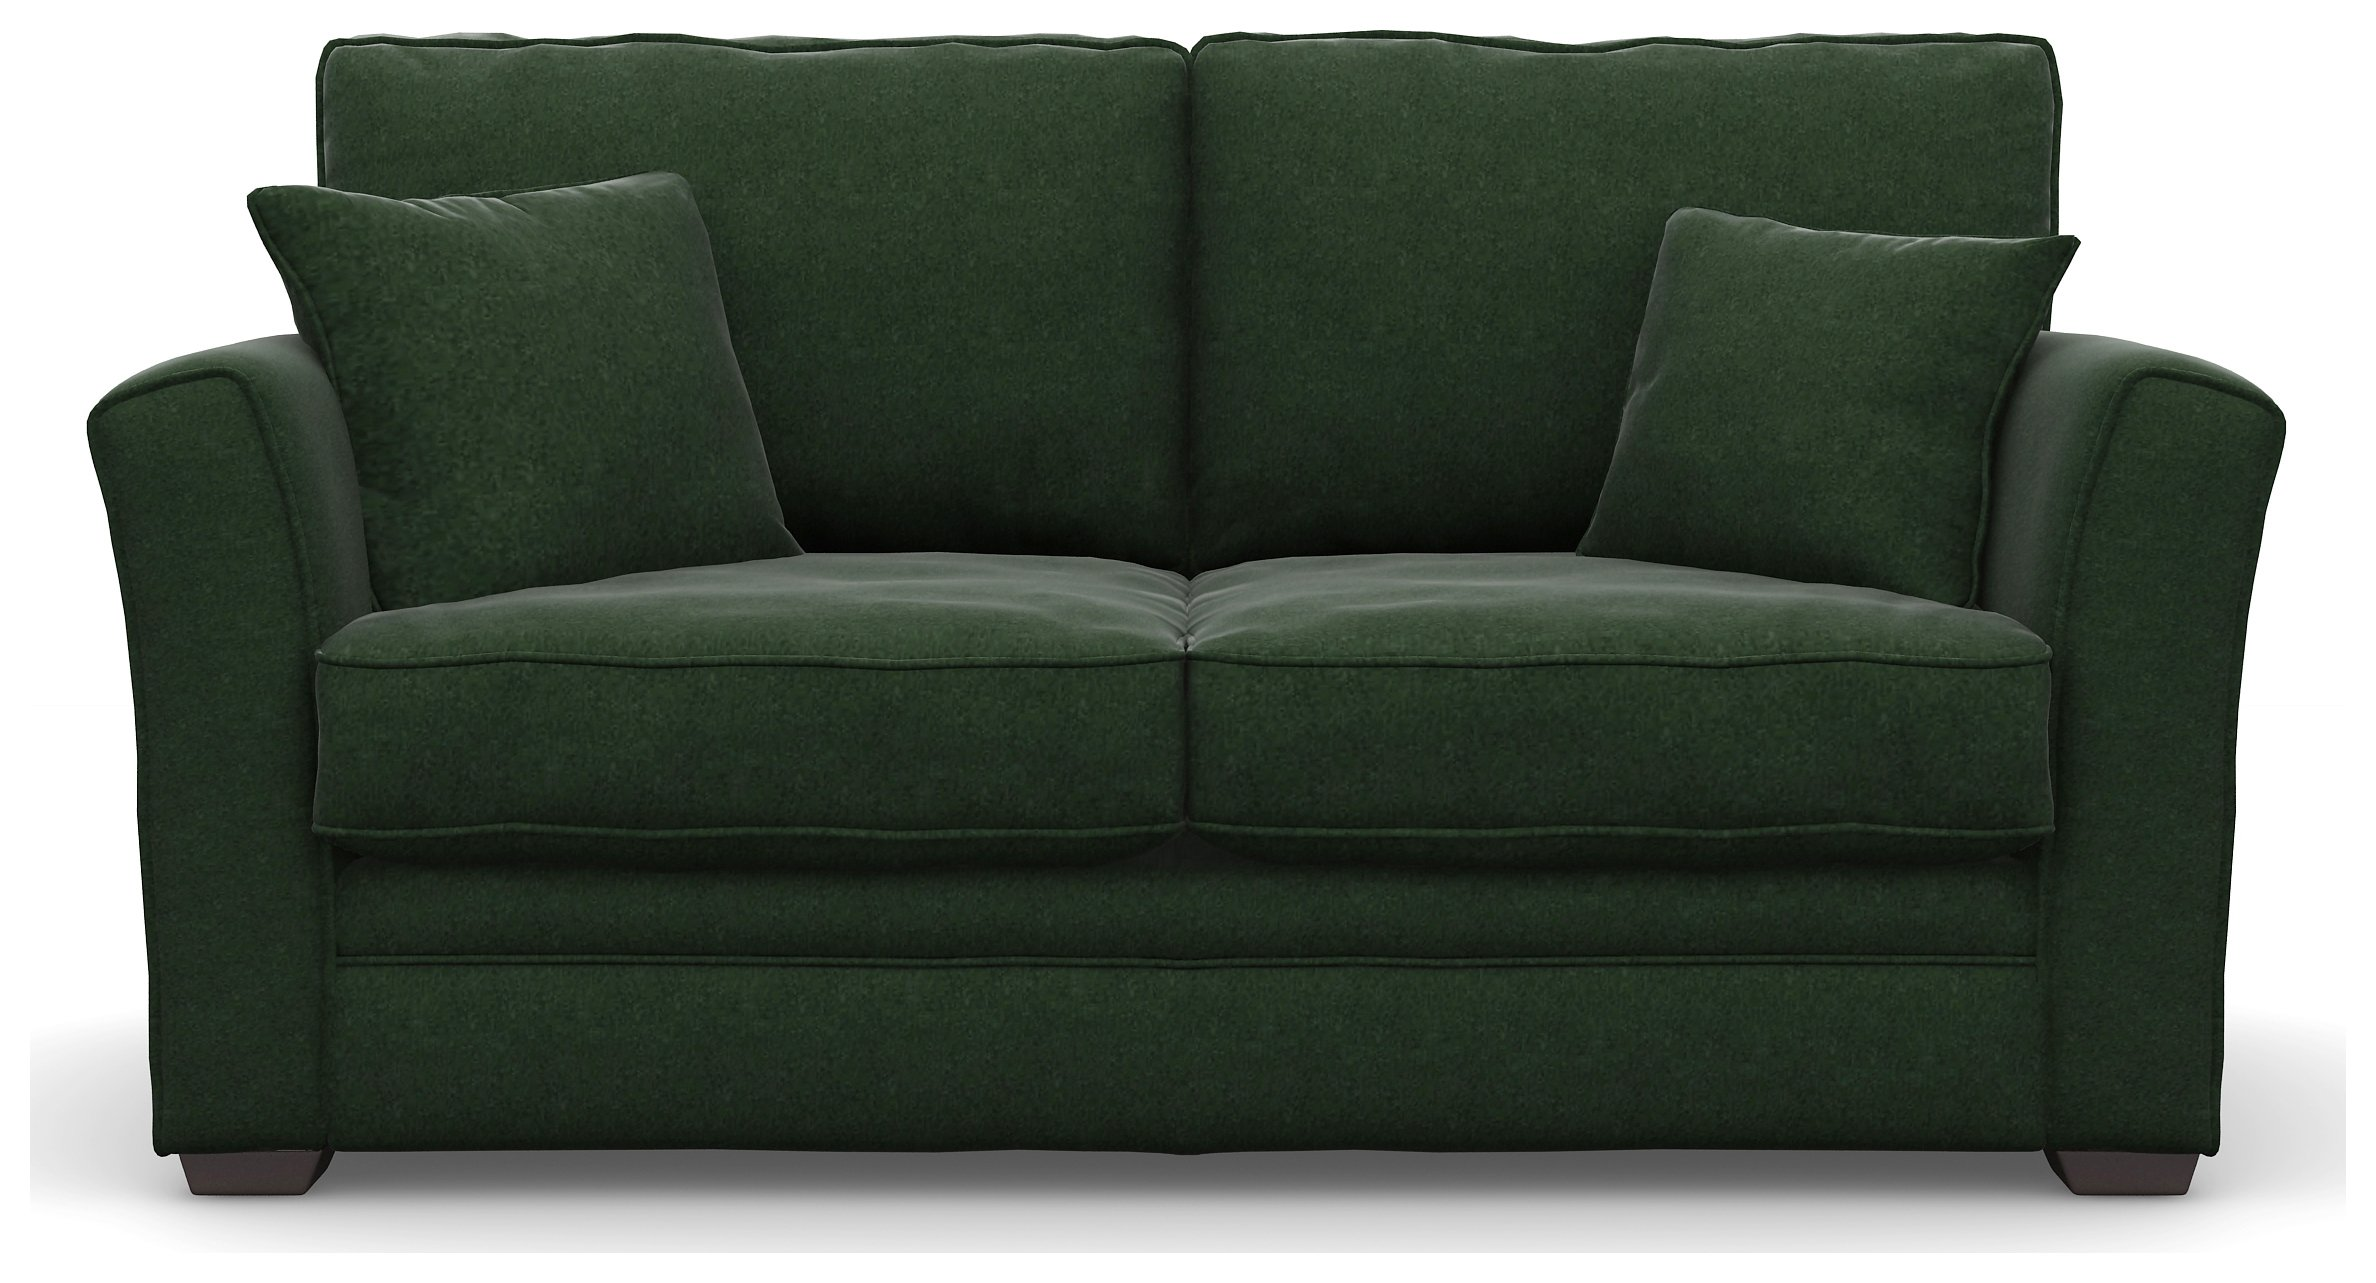 Image of Heart of House Malton 2 Seater Fabric Sofa Bed - Forest + Black Legs